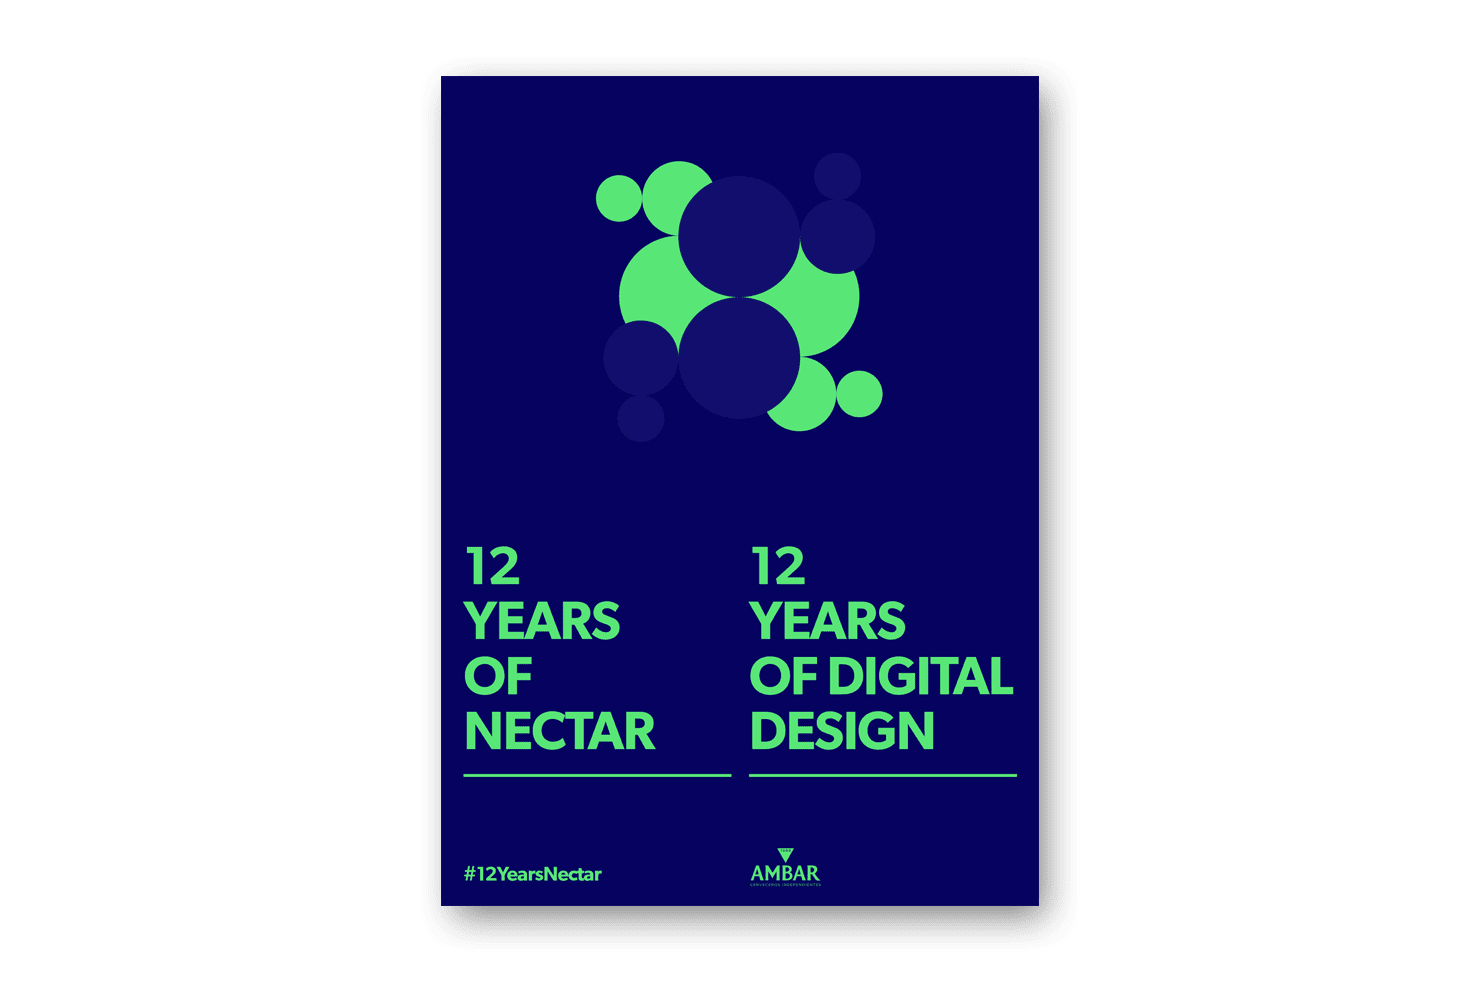 12 Years of Nectar. 12 Years of digital Design